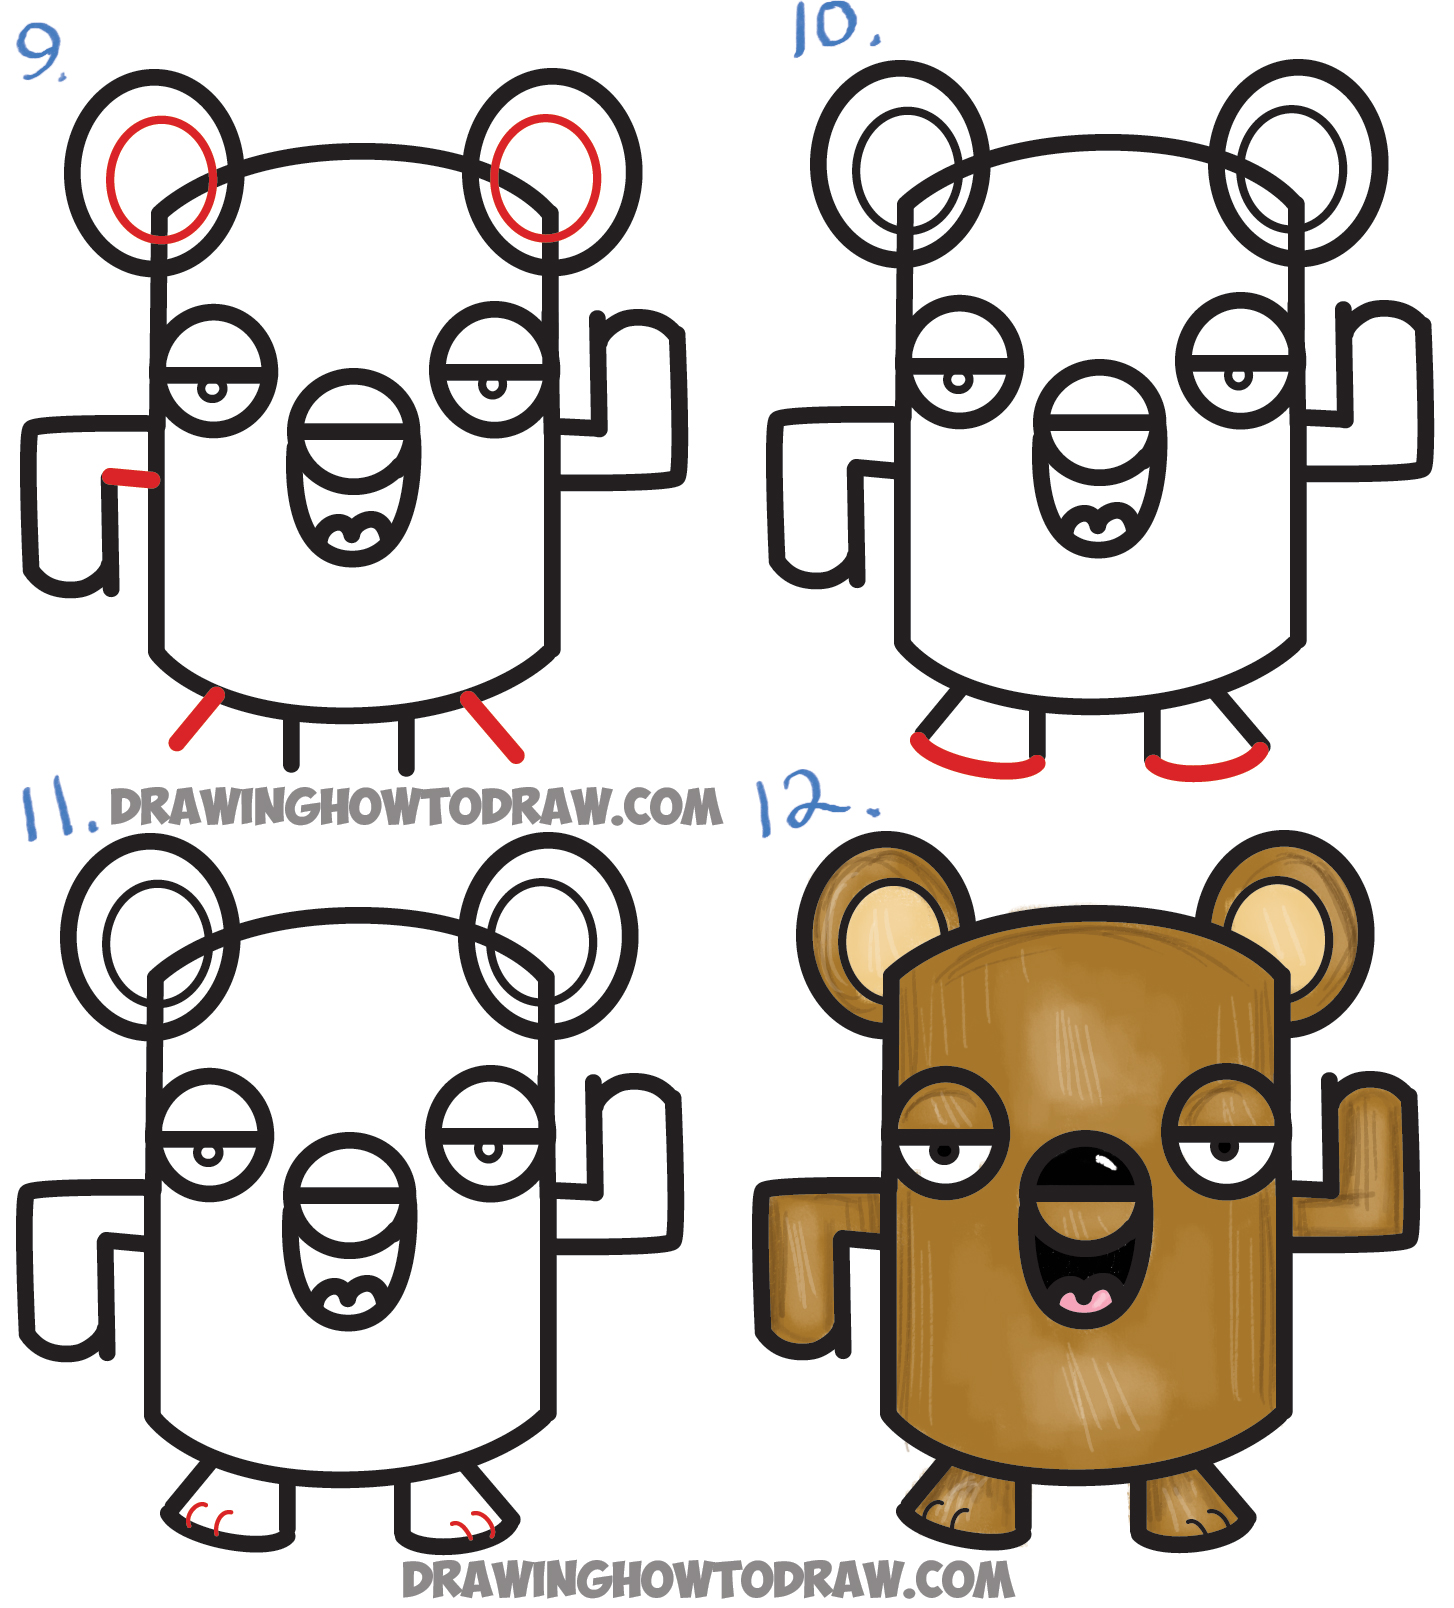 Uncategorized How To Draw A Bear For Kids how to draw a cartoon bear from the word tutorial for